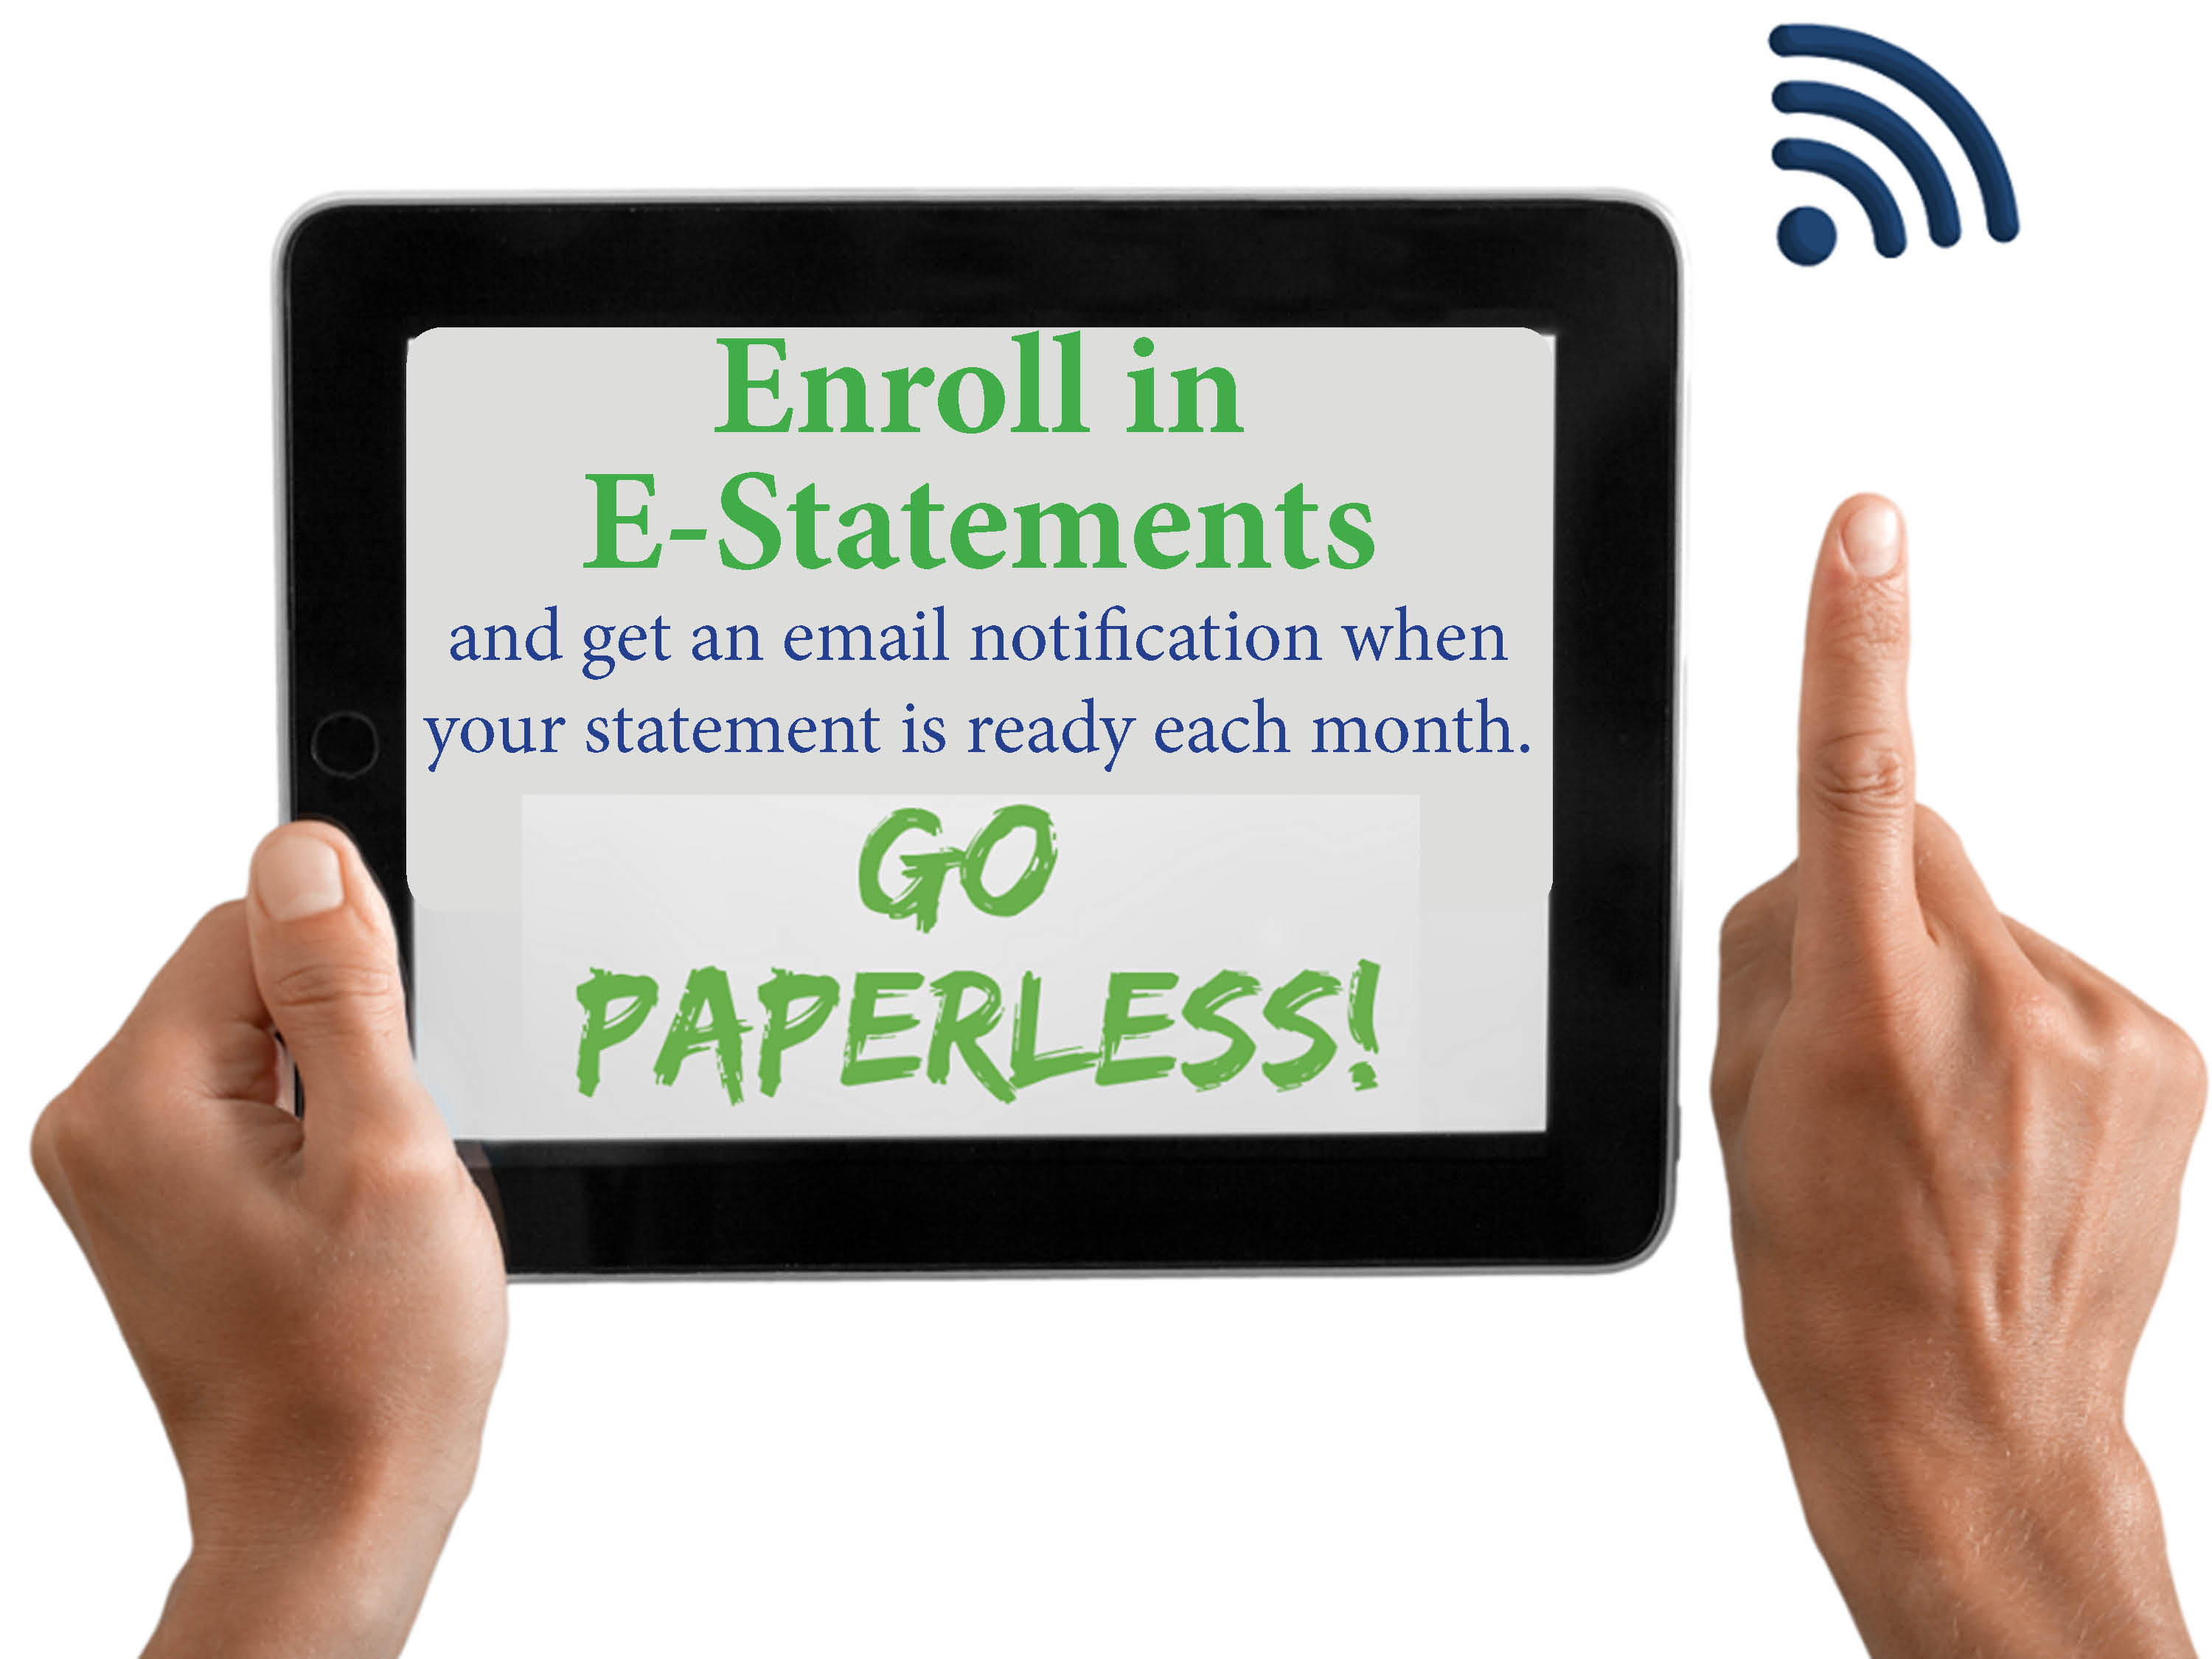 Go Paperless and Sign Up for Estatements